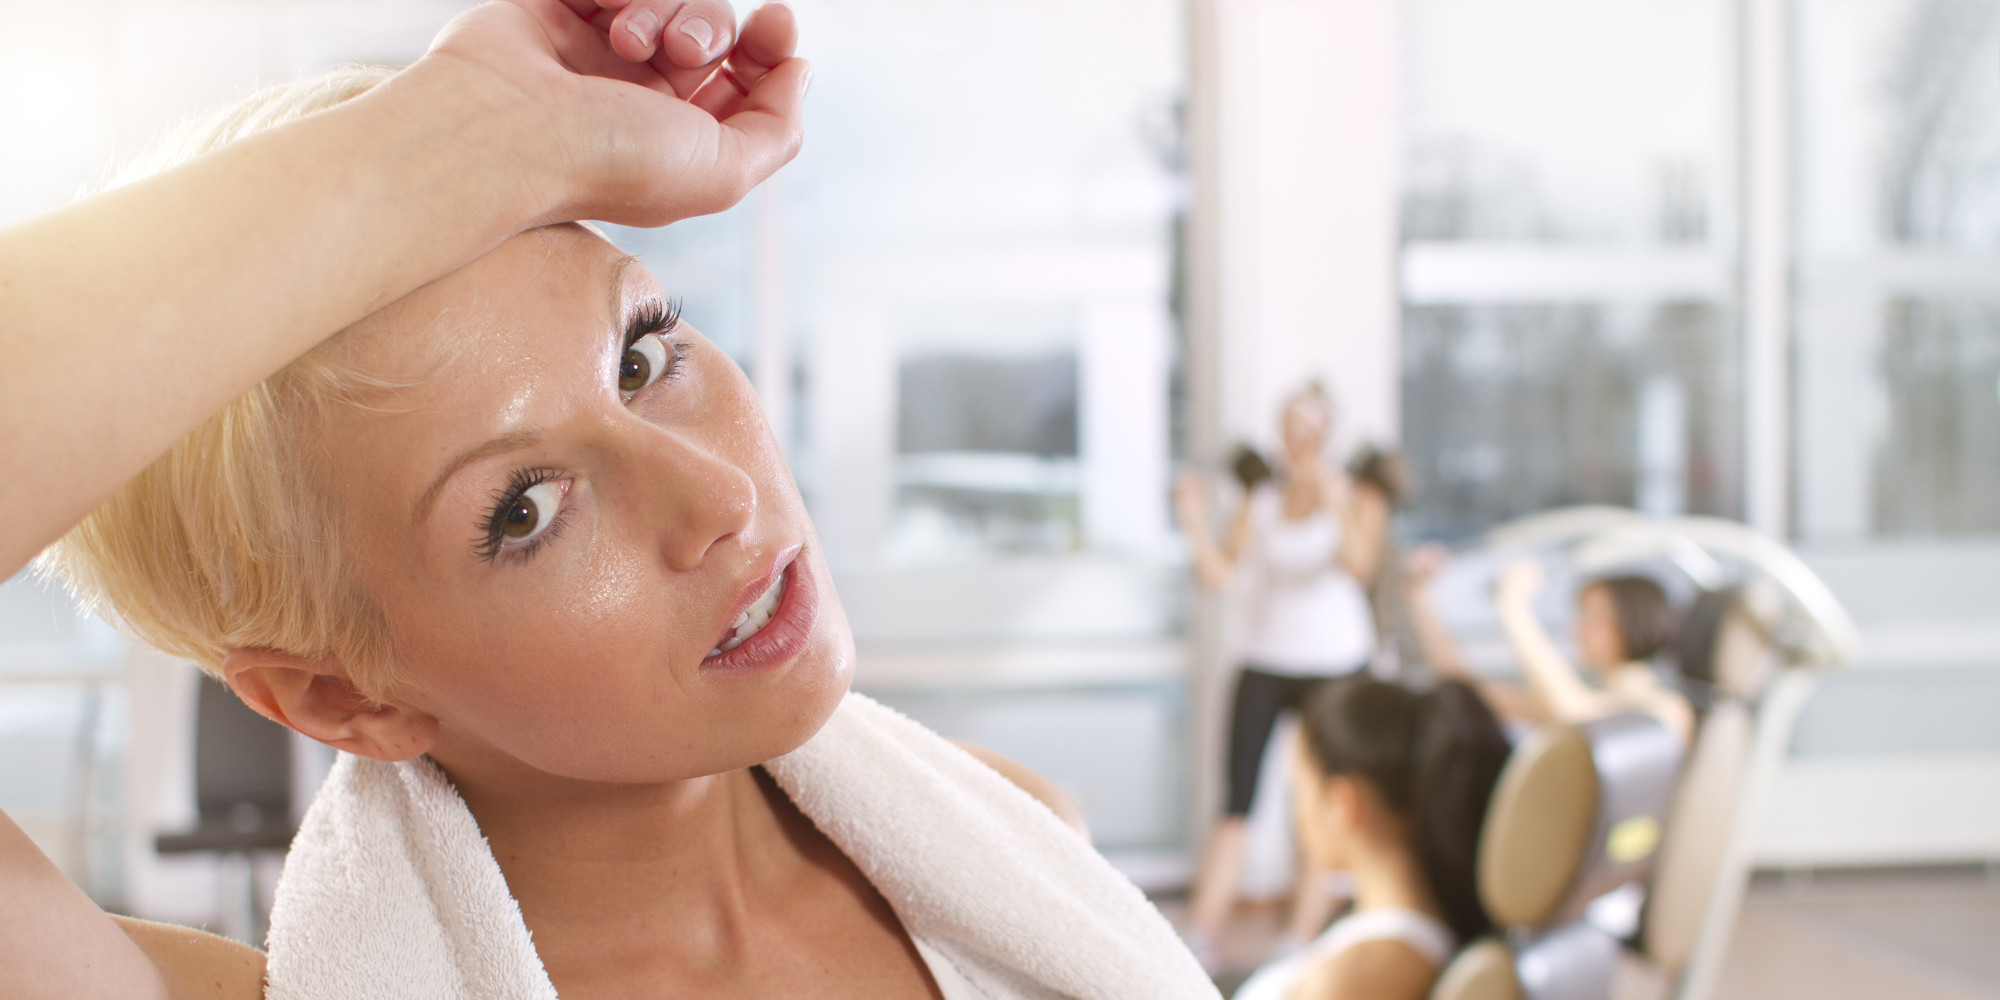 Using Your Facial Steamer After a Workout?